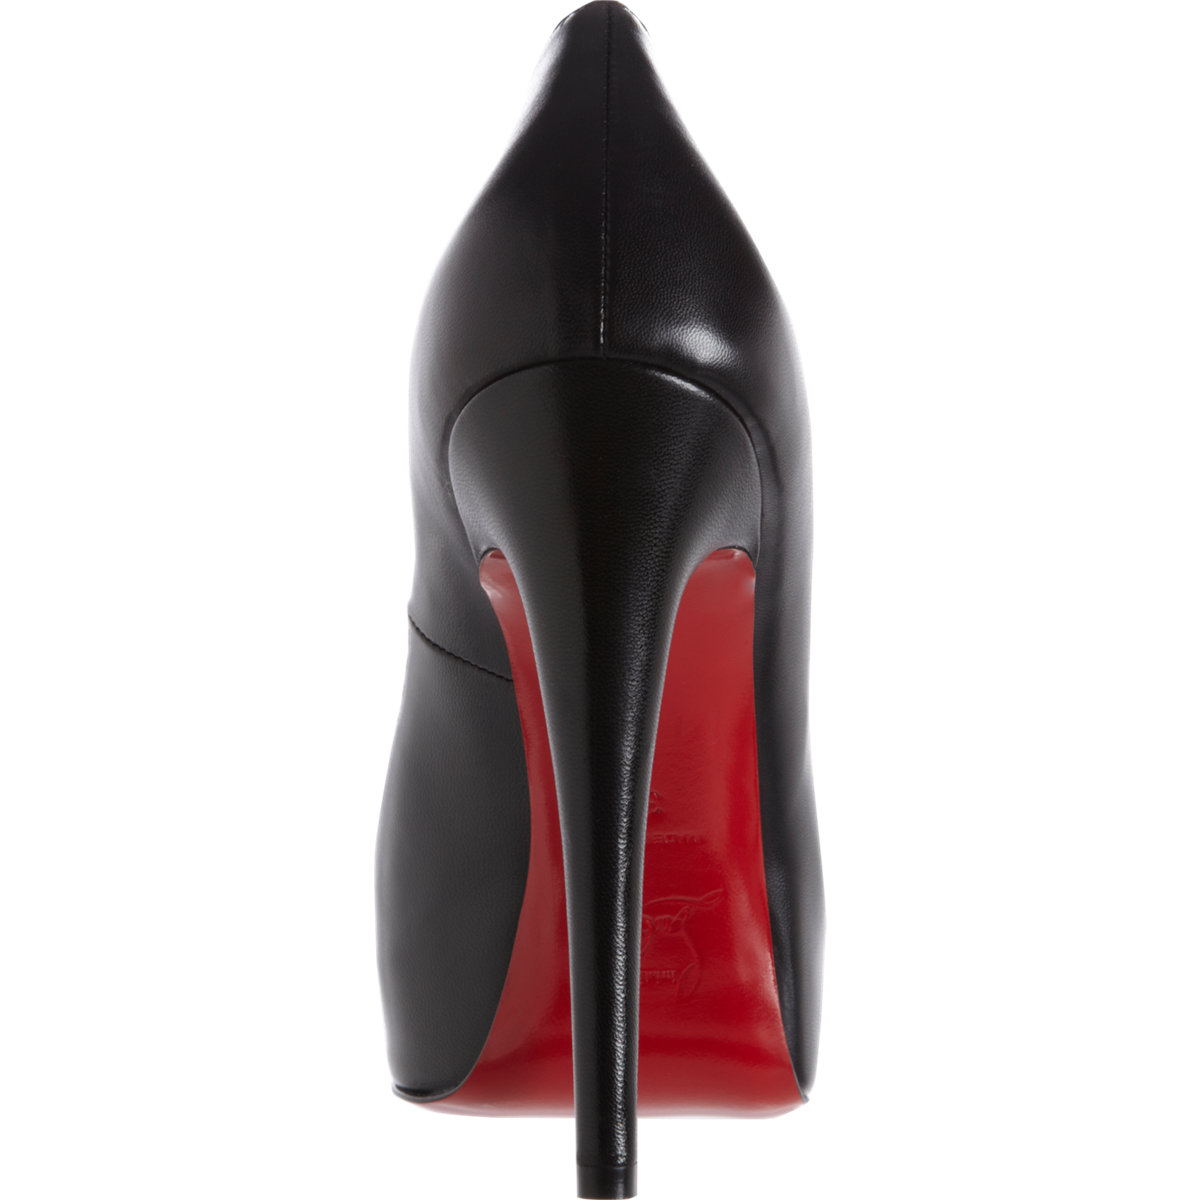 410f57a134a3 Shoeniverse  TFL - CHRISTIAN LOUBOUTIN Black Vendome Peep Toe Pumps